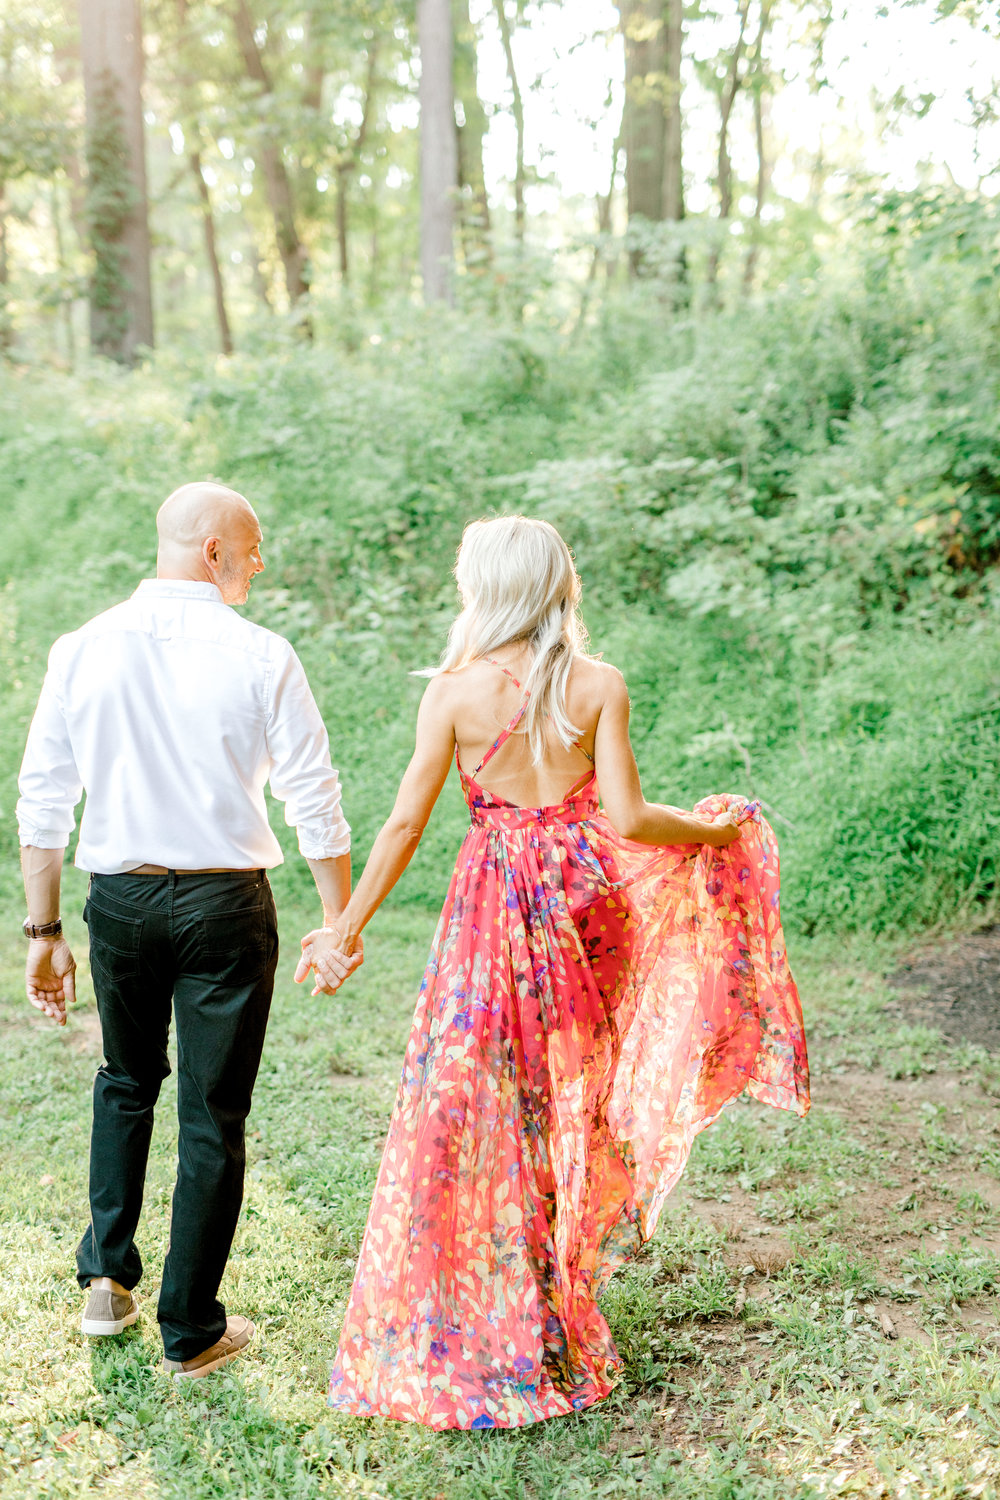 And they're off, hand in hand during their romantic sunset woodland engagement session at Parque at Ridley Creek